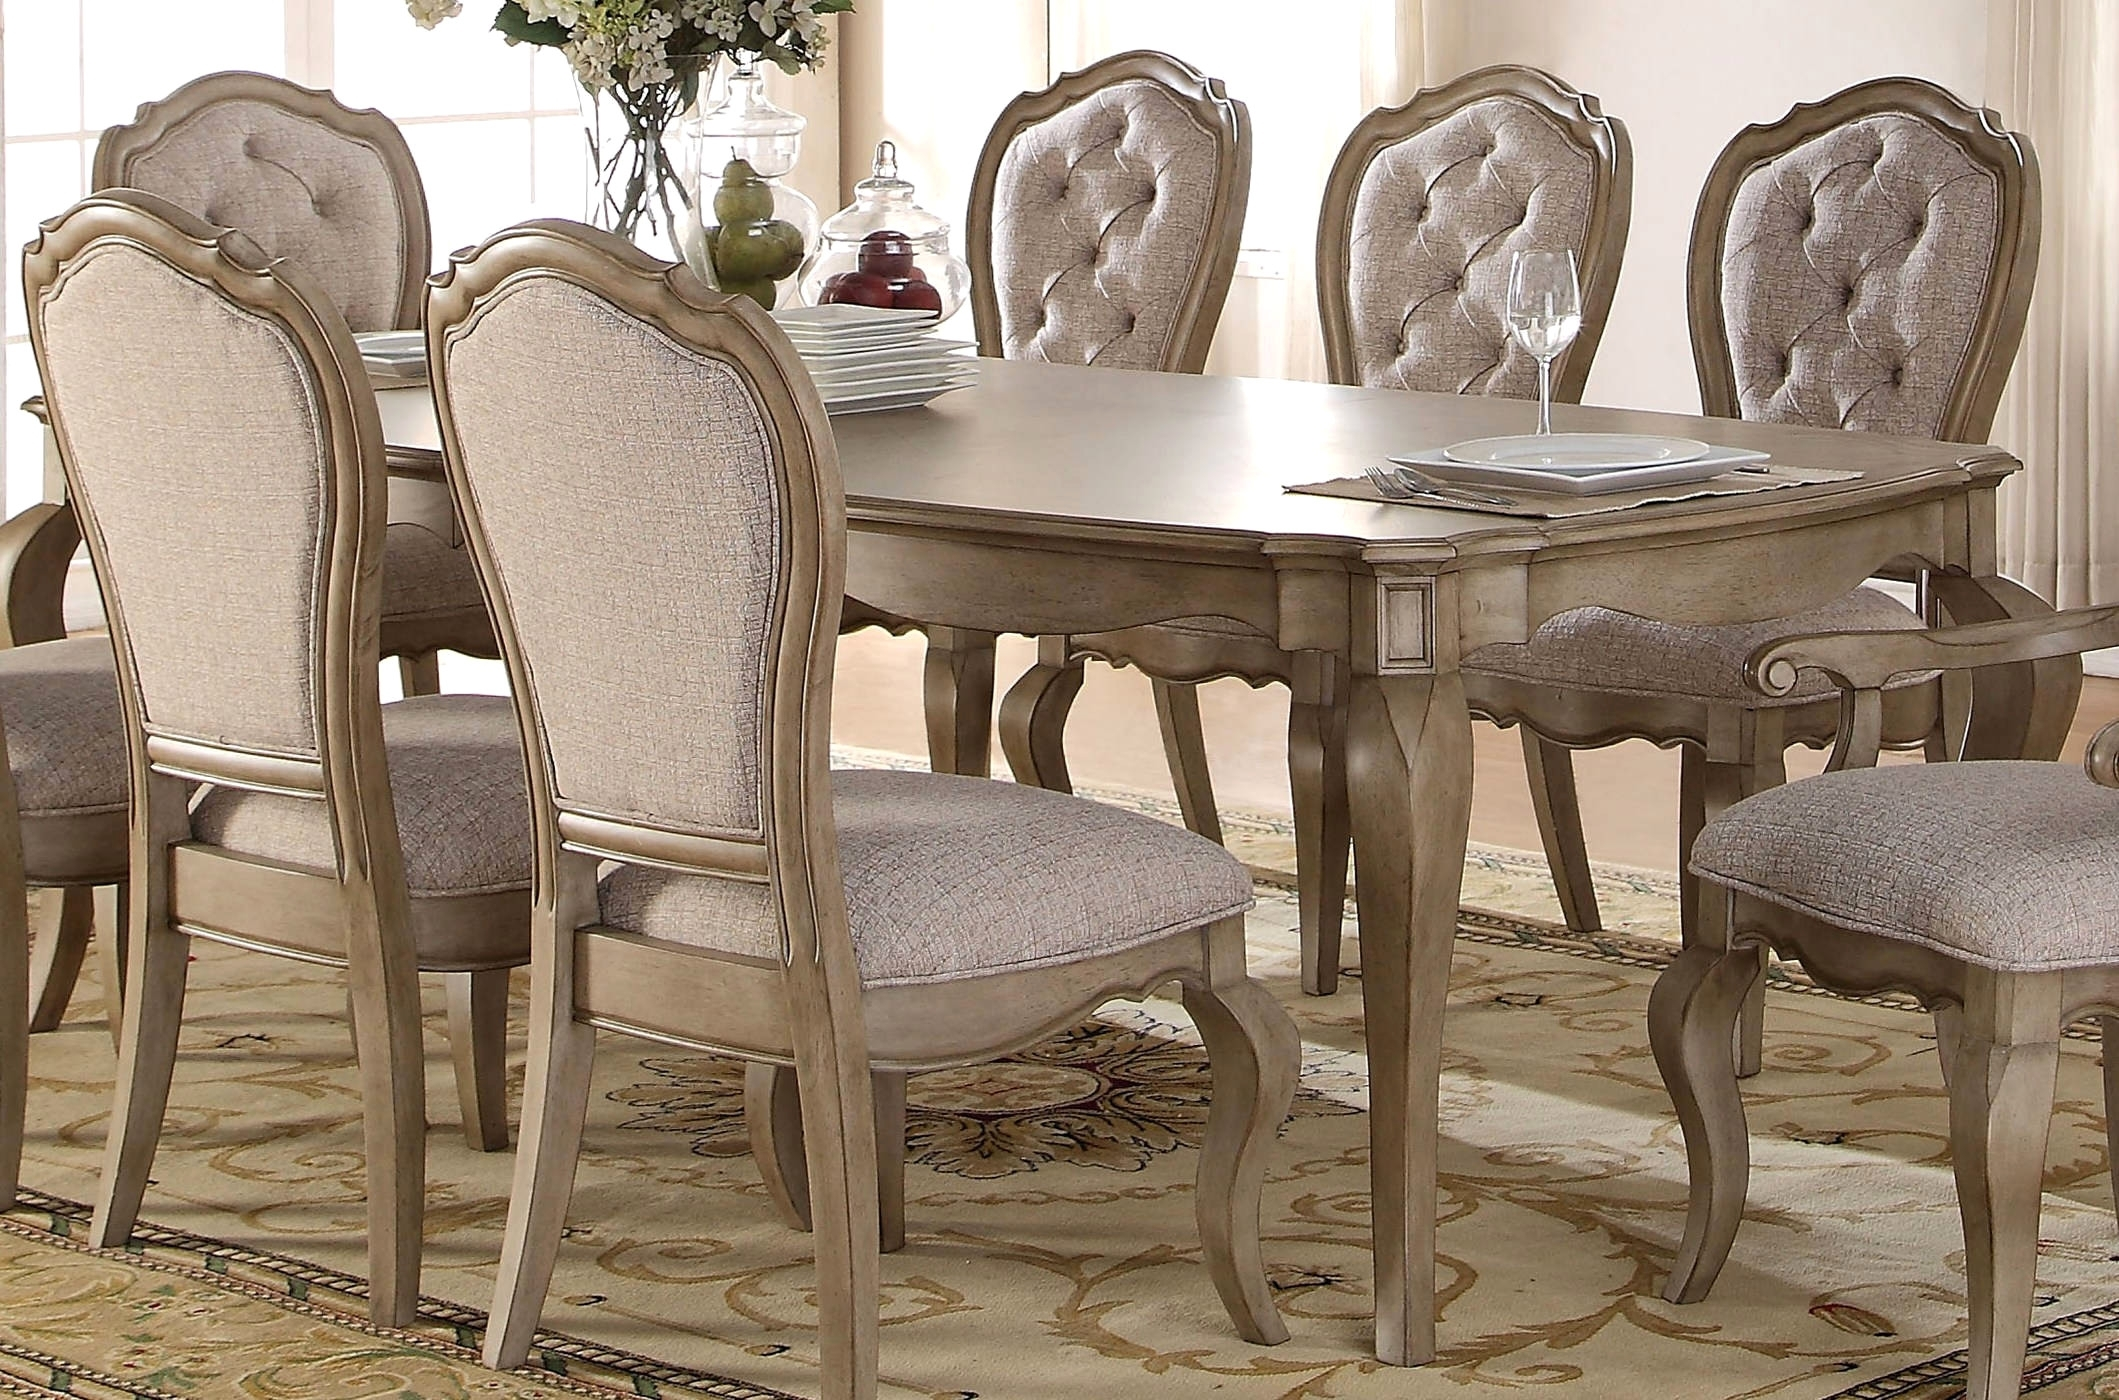 Acme Dining Table Furniture Chelmsford Antique Taupe Enlarge With Regard To Best And Newest Helms Round Dining Tables (View 11 of 20)